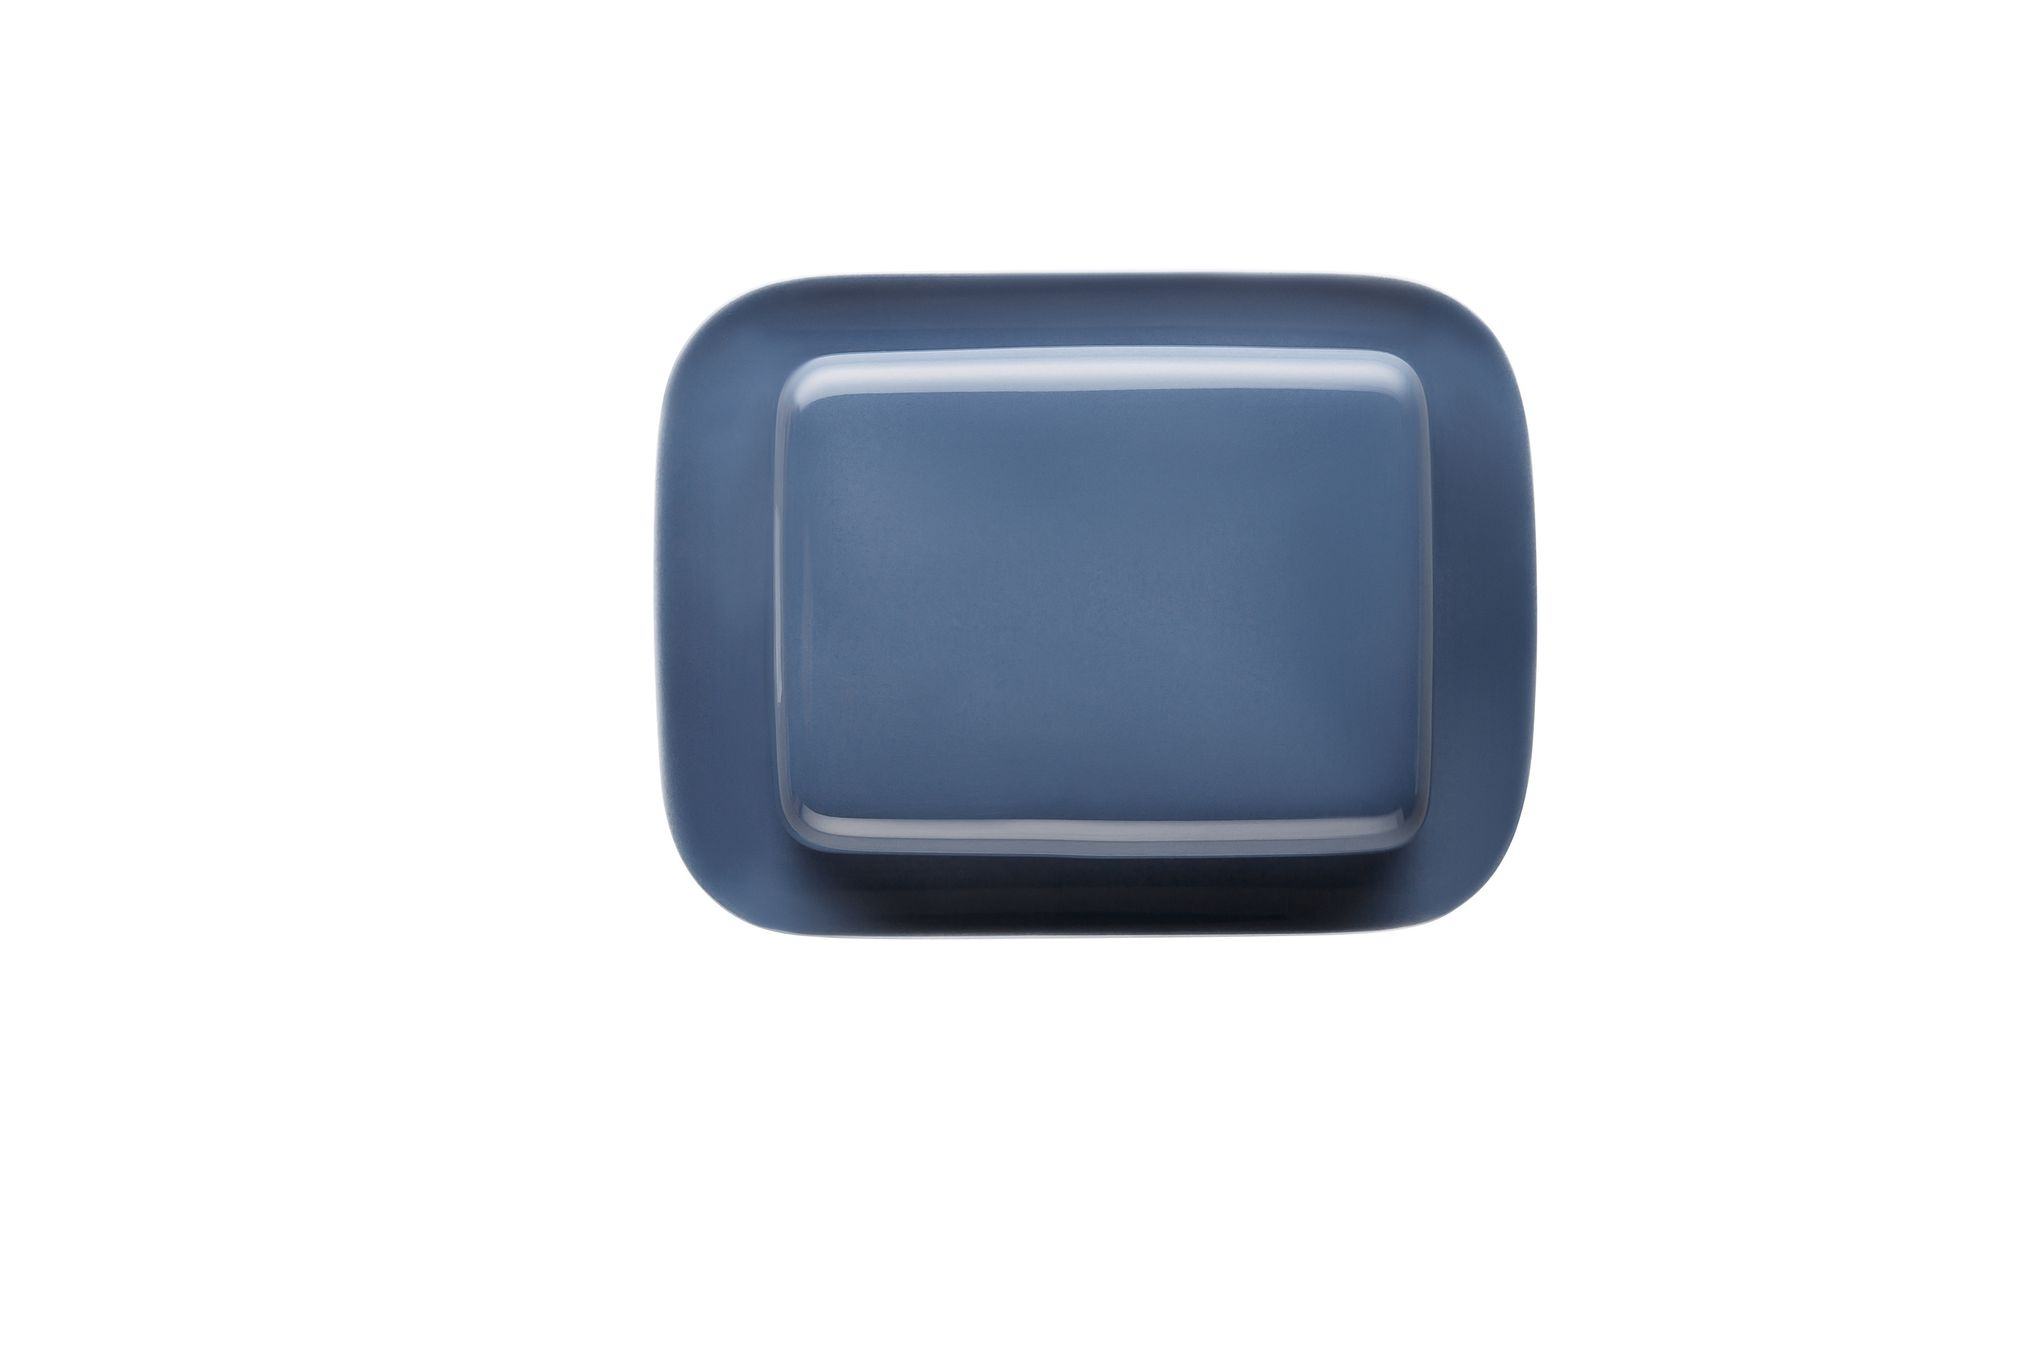 Thomas Sunny Day - Nordic Blue Butter Dish + Lid thumb 2